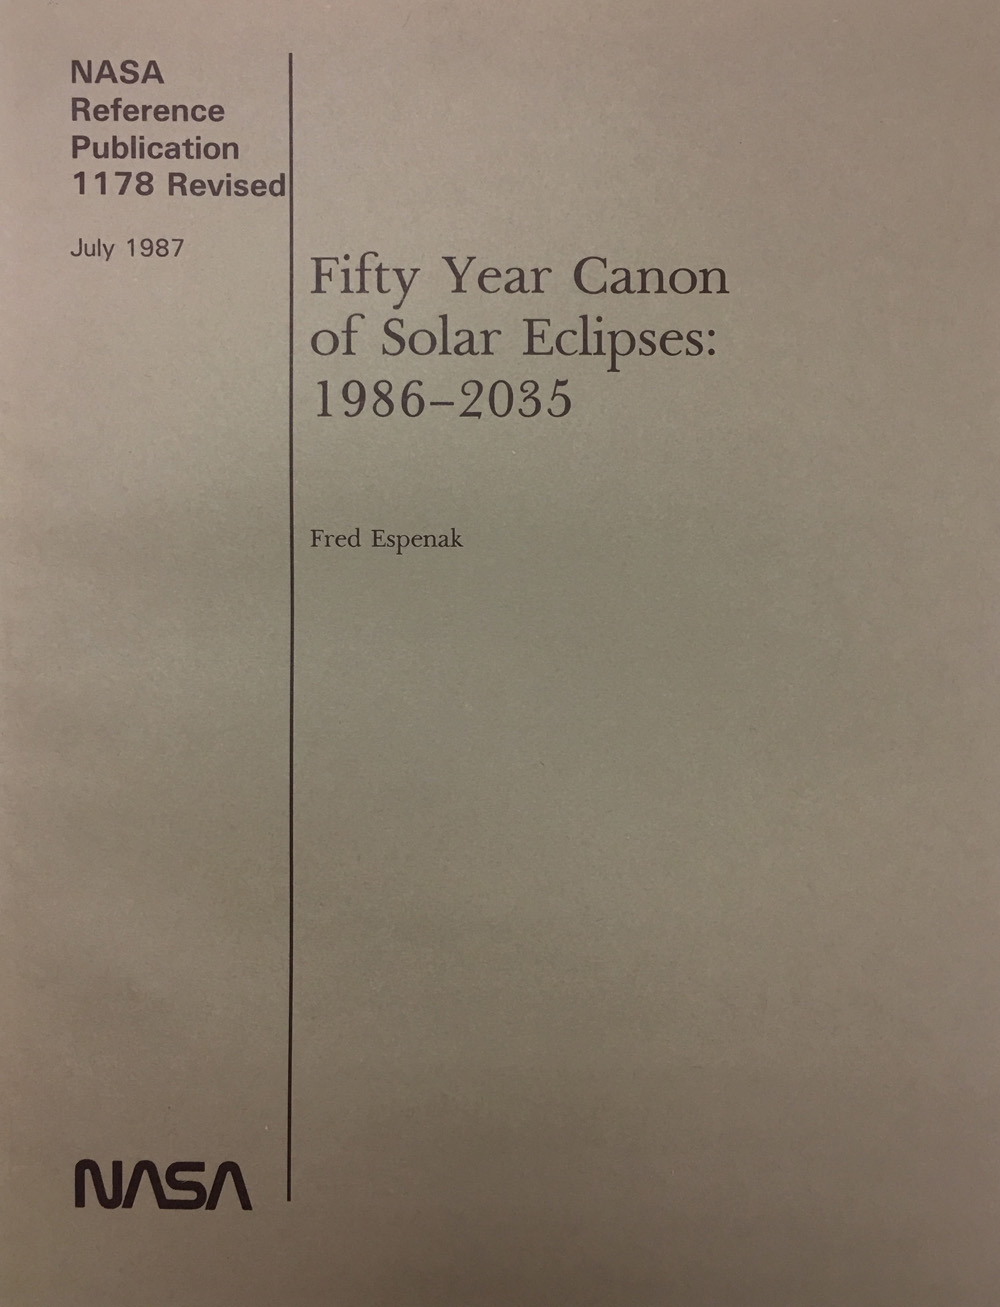 Fifty Year Canon of Solar Eclipses.jpg